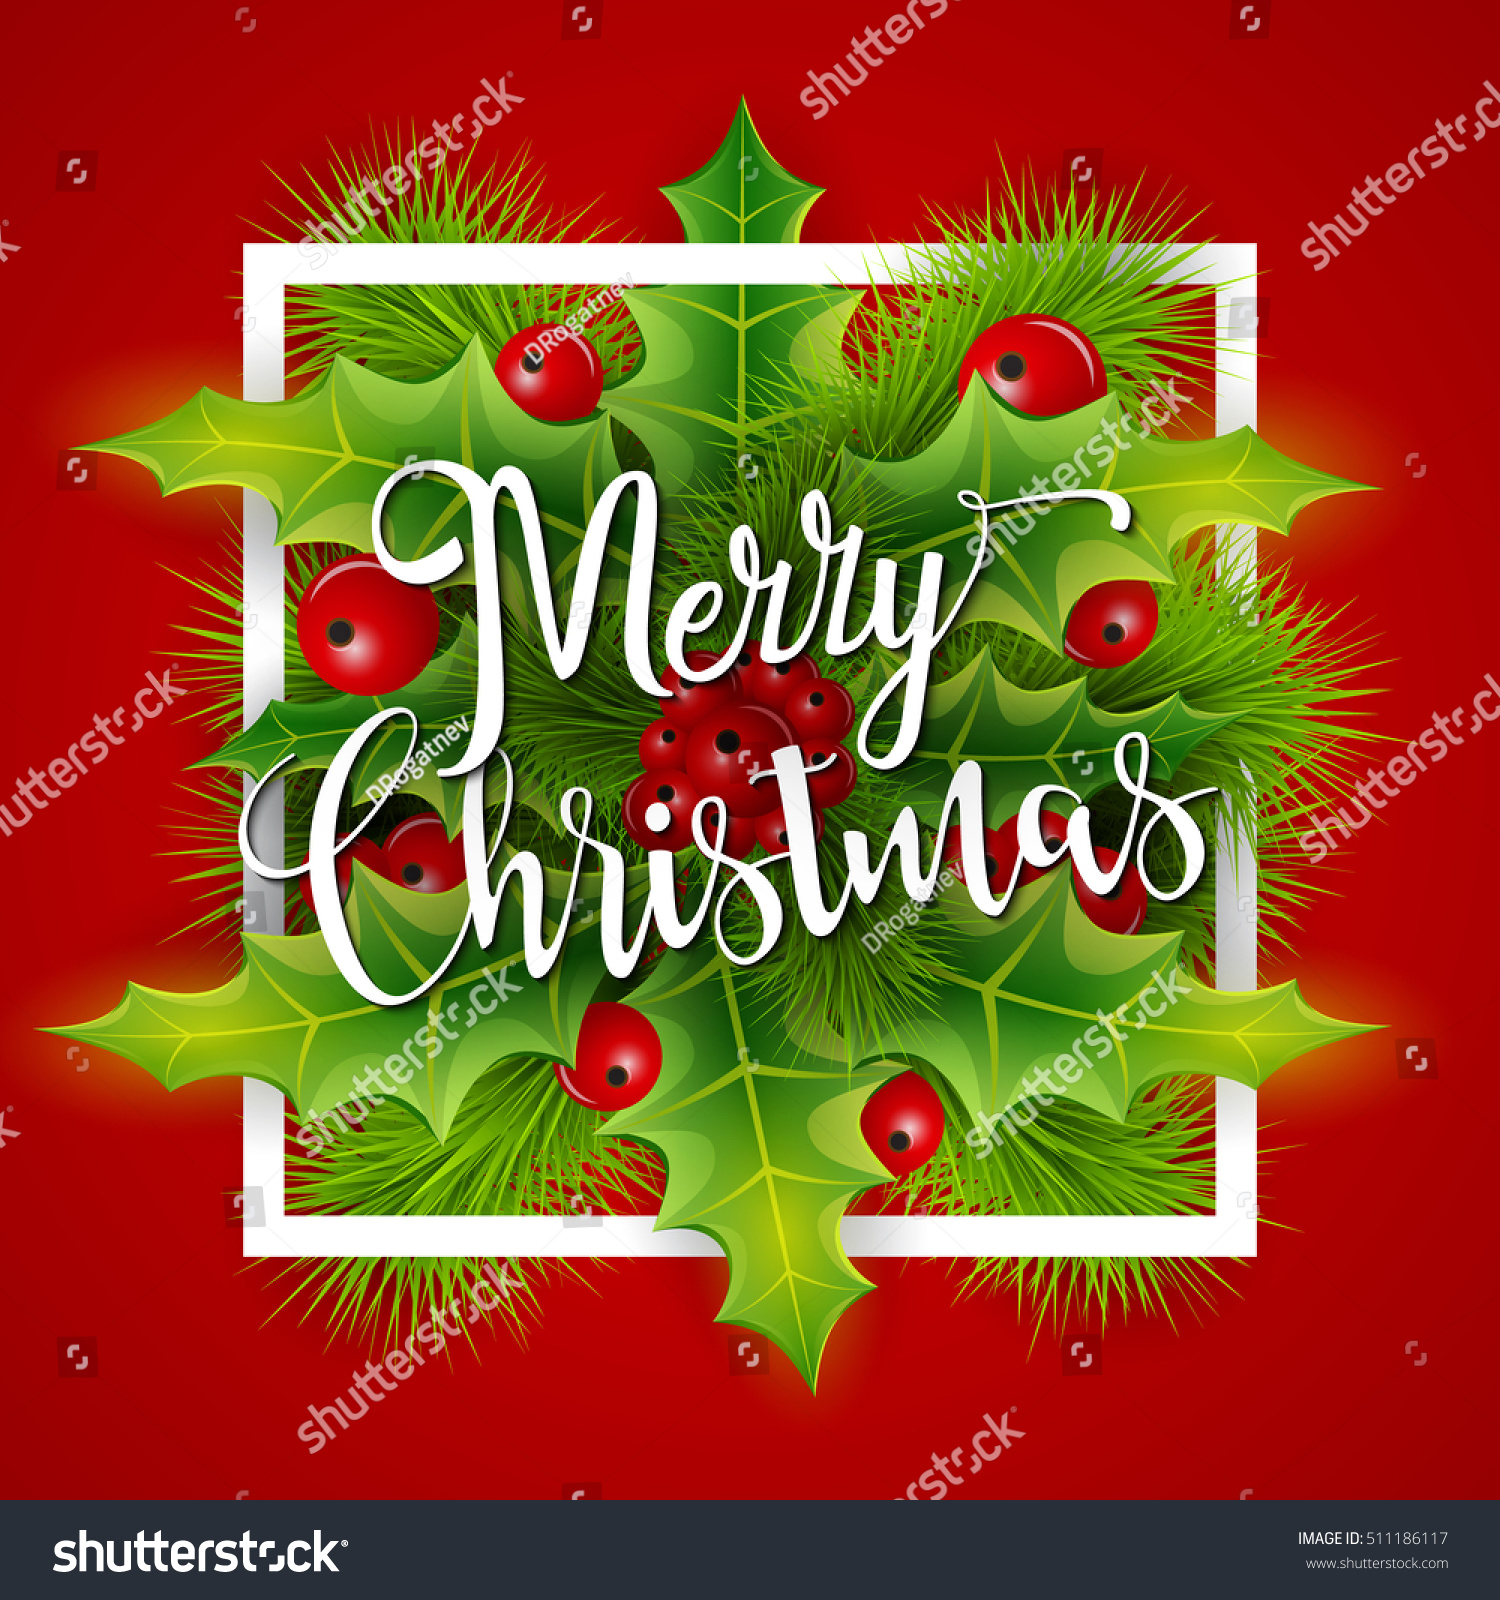 Merry Christmas Greetings Card Christmas Holly Stock Illustration